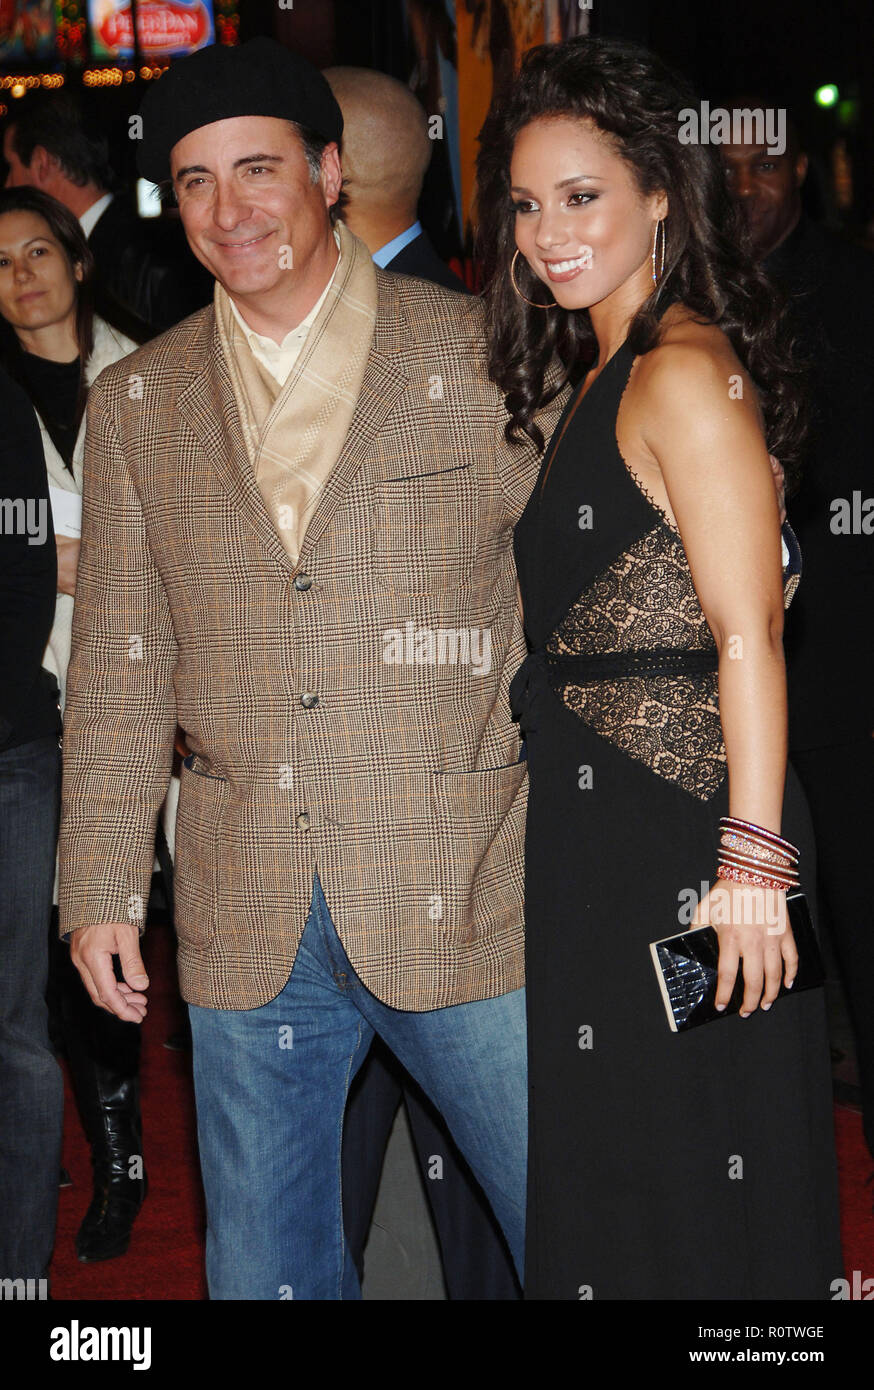 Andy Garcia and Alicia Keys arriving at the Smokin' Aces at the Chinese Theatre In Los Angeles. January 18, 2007.  smile 3/4          -            09_ - Stock Image